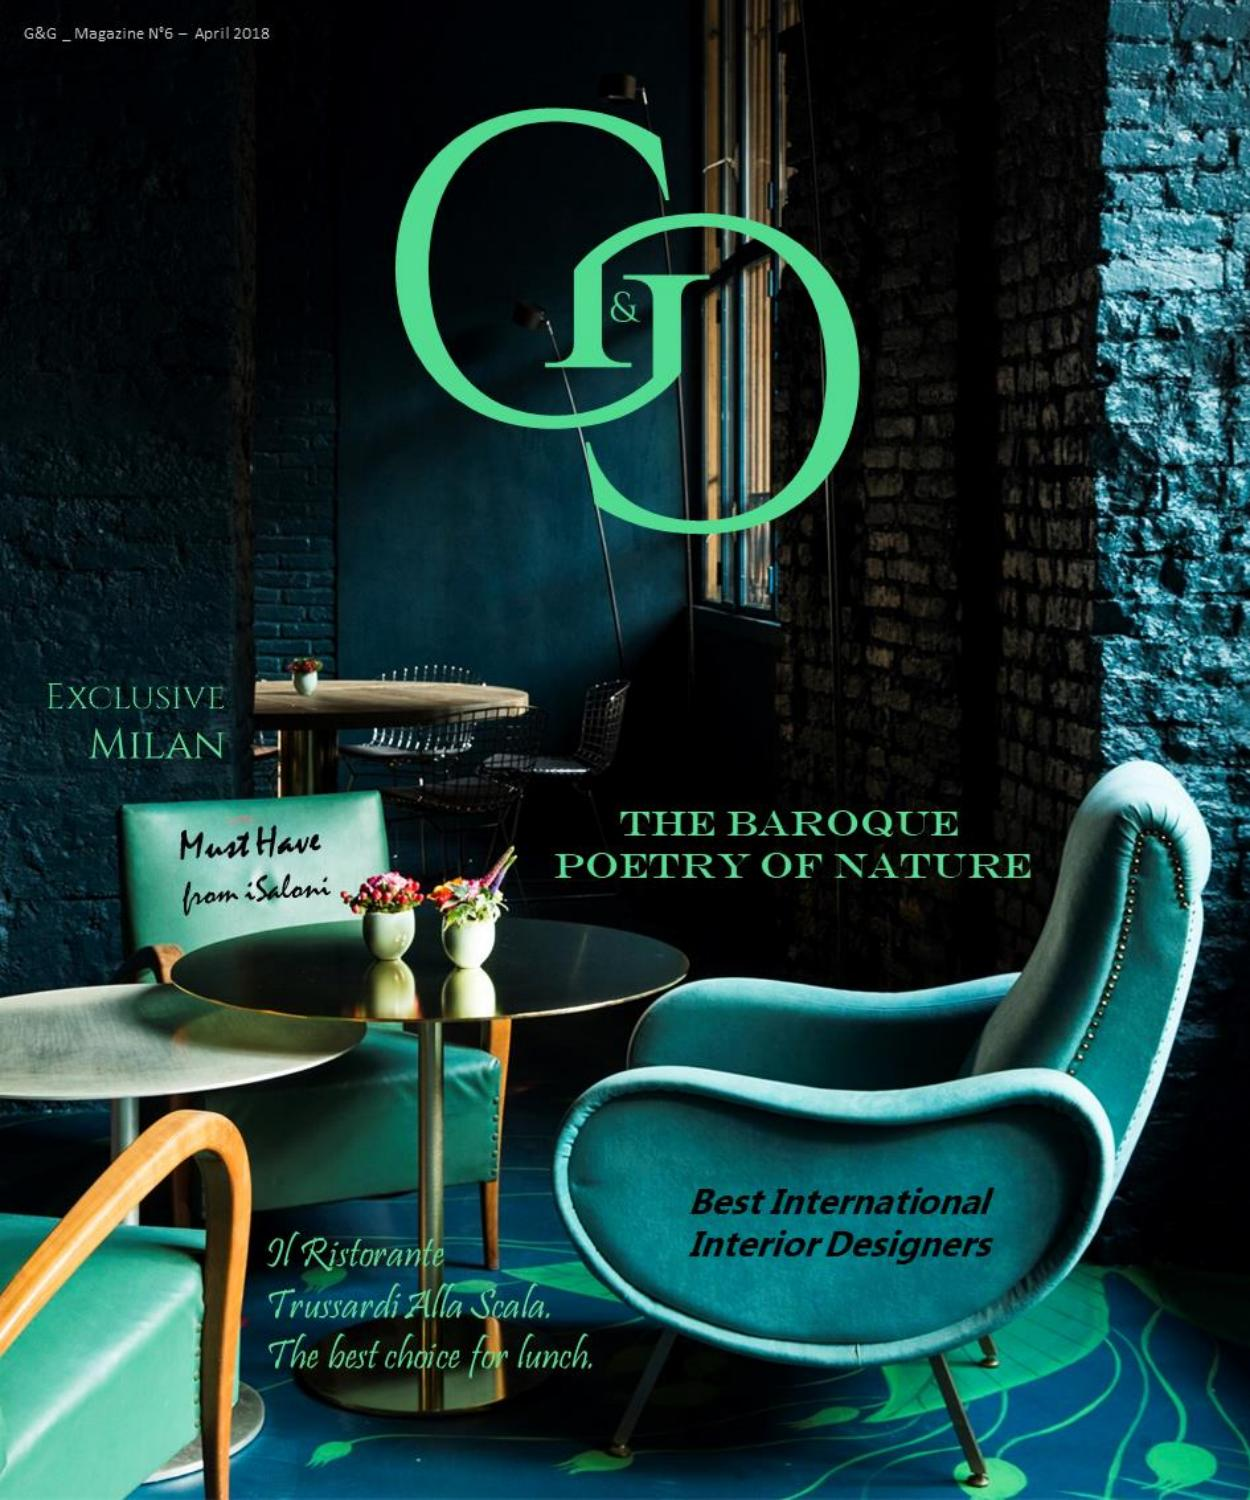 Astonishing Exclusive Milan Gg Magazine N06 By Gg Magazine Issuu Beatyapartments Chair Design Images Beatyapartmentscom